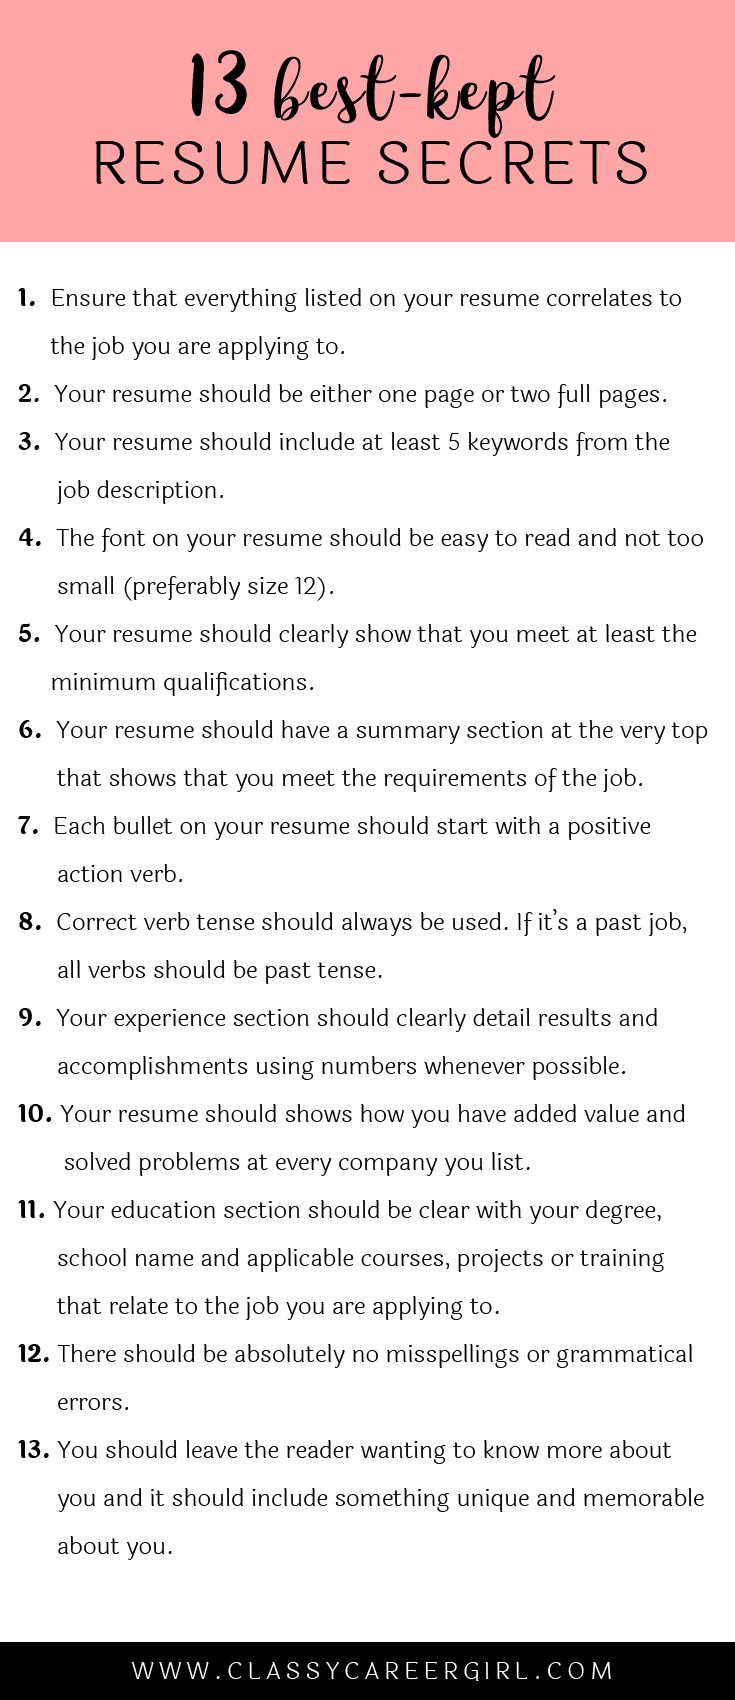 Opposenewapstandardsus  Mesmerizing  Ideas About Resume On Pinterest  Cv Format Resume  With Interesting Some Hiring Managers Will Toss Your Resume Out If You Dont Know These  With Breathtaking Usajobs Resume Tips Also Bartender Resume Objective In Addition Email Resume Cover Letter And Good Words To Use On A Resume As Well As Software Engineering Resume Additionally Leadership Skills For Resume From Pinterestcom With Opposenewapstandardsus  Interesting  Ideas About Resume On Pinterest  Cv Format Resume  With Breathtaking Some Hiring Managers Will Toss Your Resume Out If You Dont Know These  And Mesmerizing Usajobs Resume Tips Also Bartender Resume Objective In Addition Email Resume Cover Letter From Pinterestcom